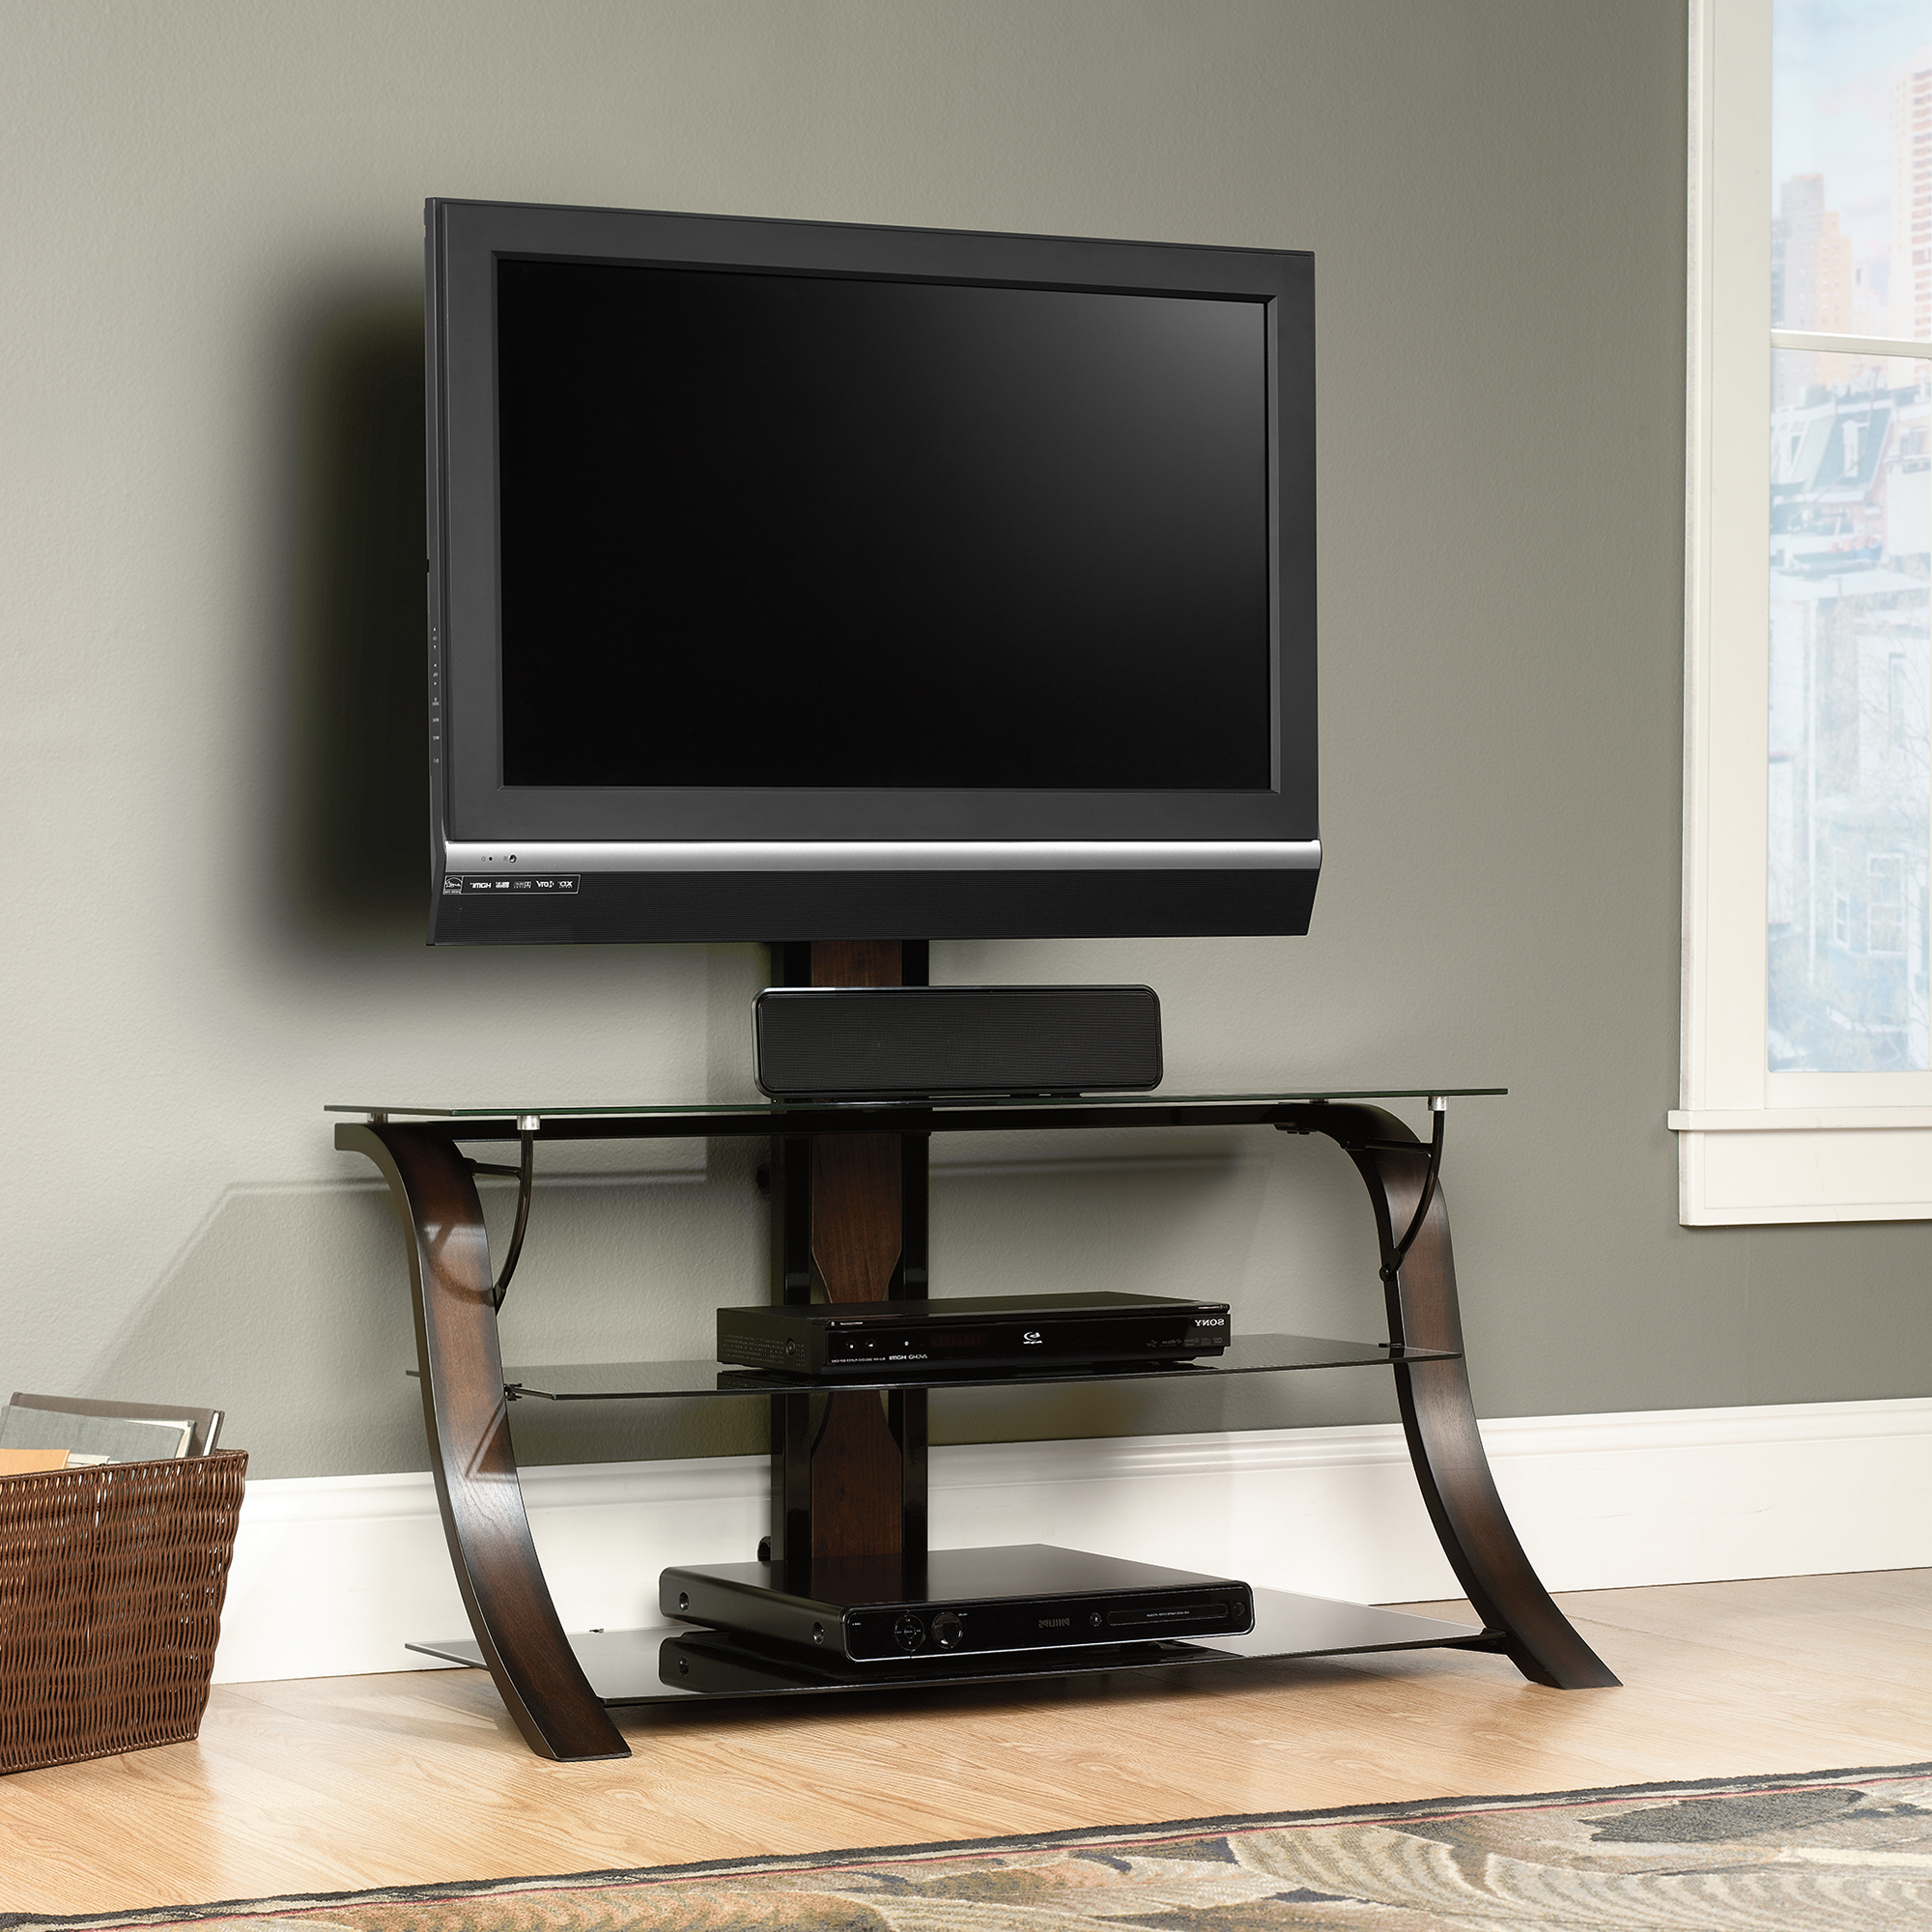 Tv Stands Swivel Mount In Well Known Ipad Swivel Mount Corner Tv Stand With Flat Screen 55 Inch Walmart (View 16 of 20)